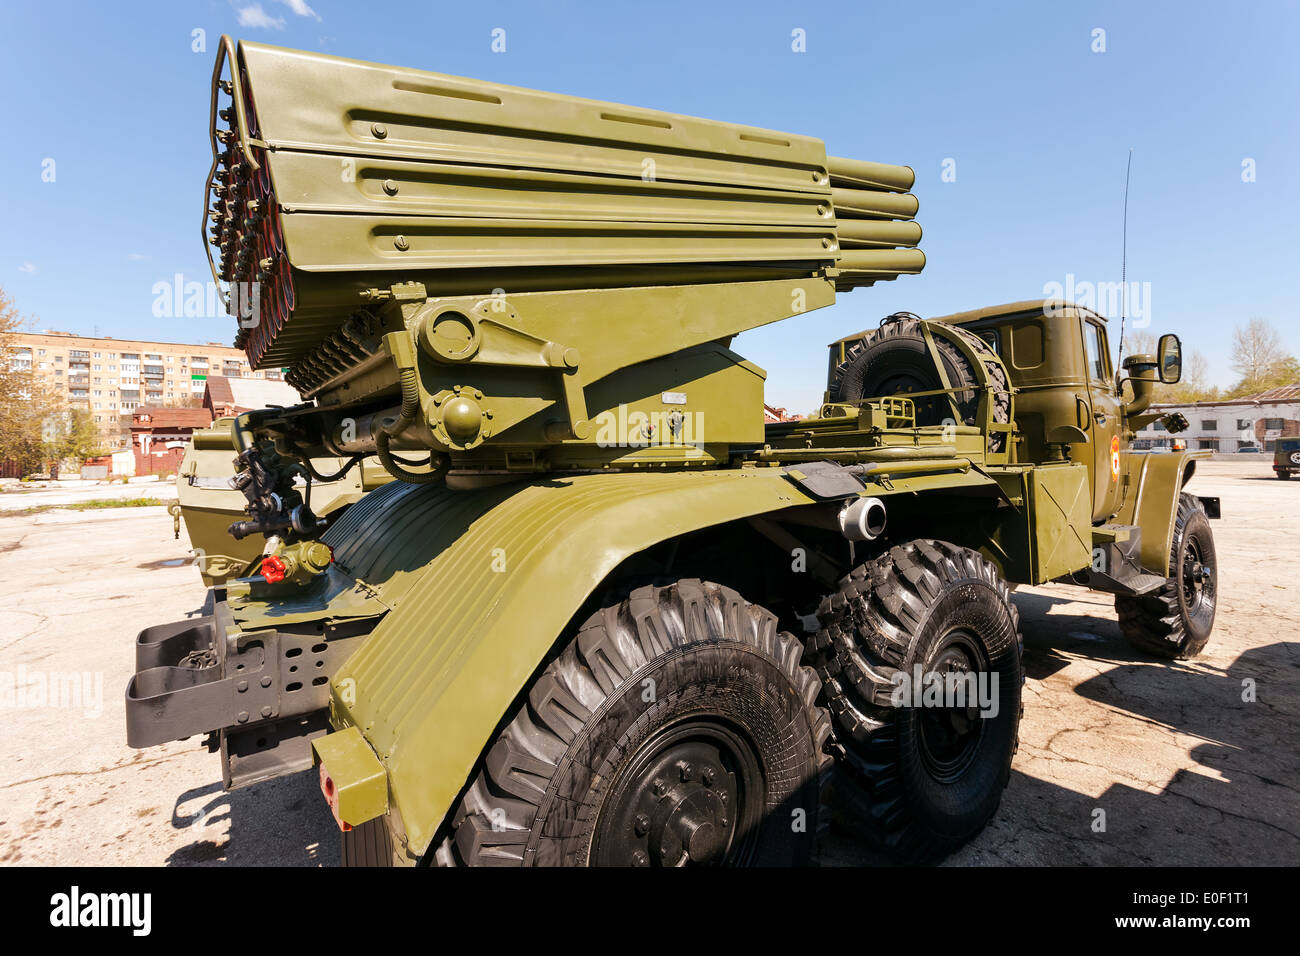 bm 21 grad 122 mm multiple rocket launcher on ural 375d chassis stock photo royalty free image. Black Bedroom Furniture Sets. Home Design Ideas